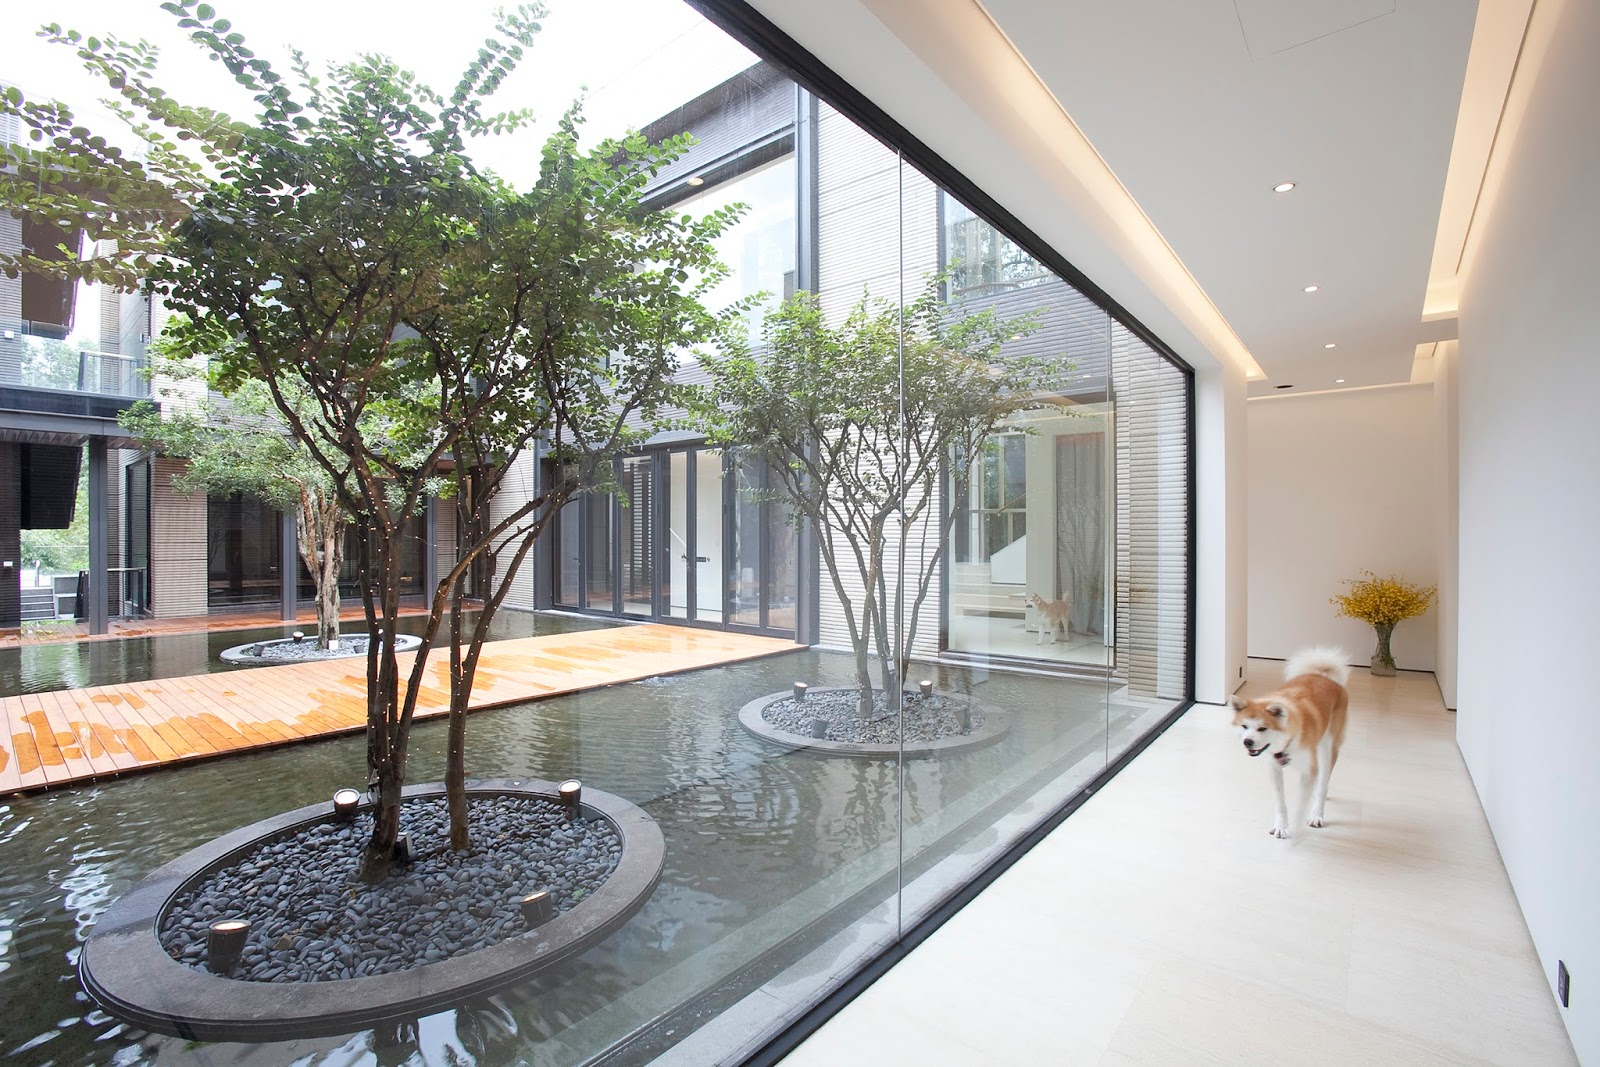 Overlooking A Scenic Golf Course In Huadu District Guangzhou The 15000 Sq Ft Dragon Lake House Embodies Less Is More Design Approach